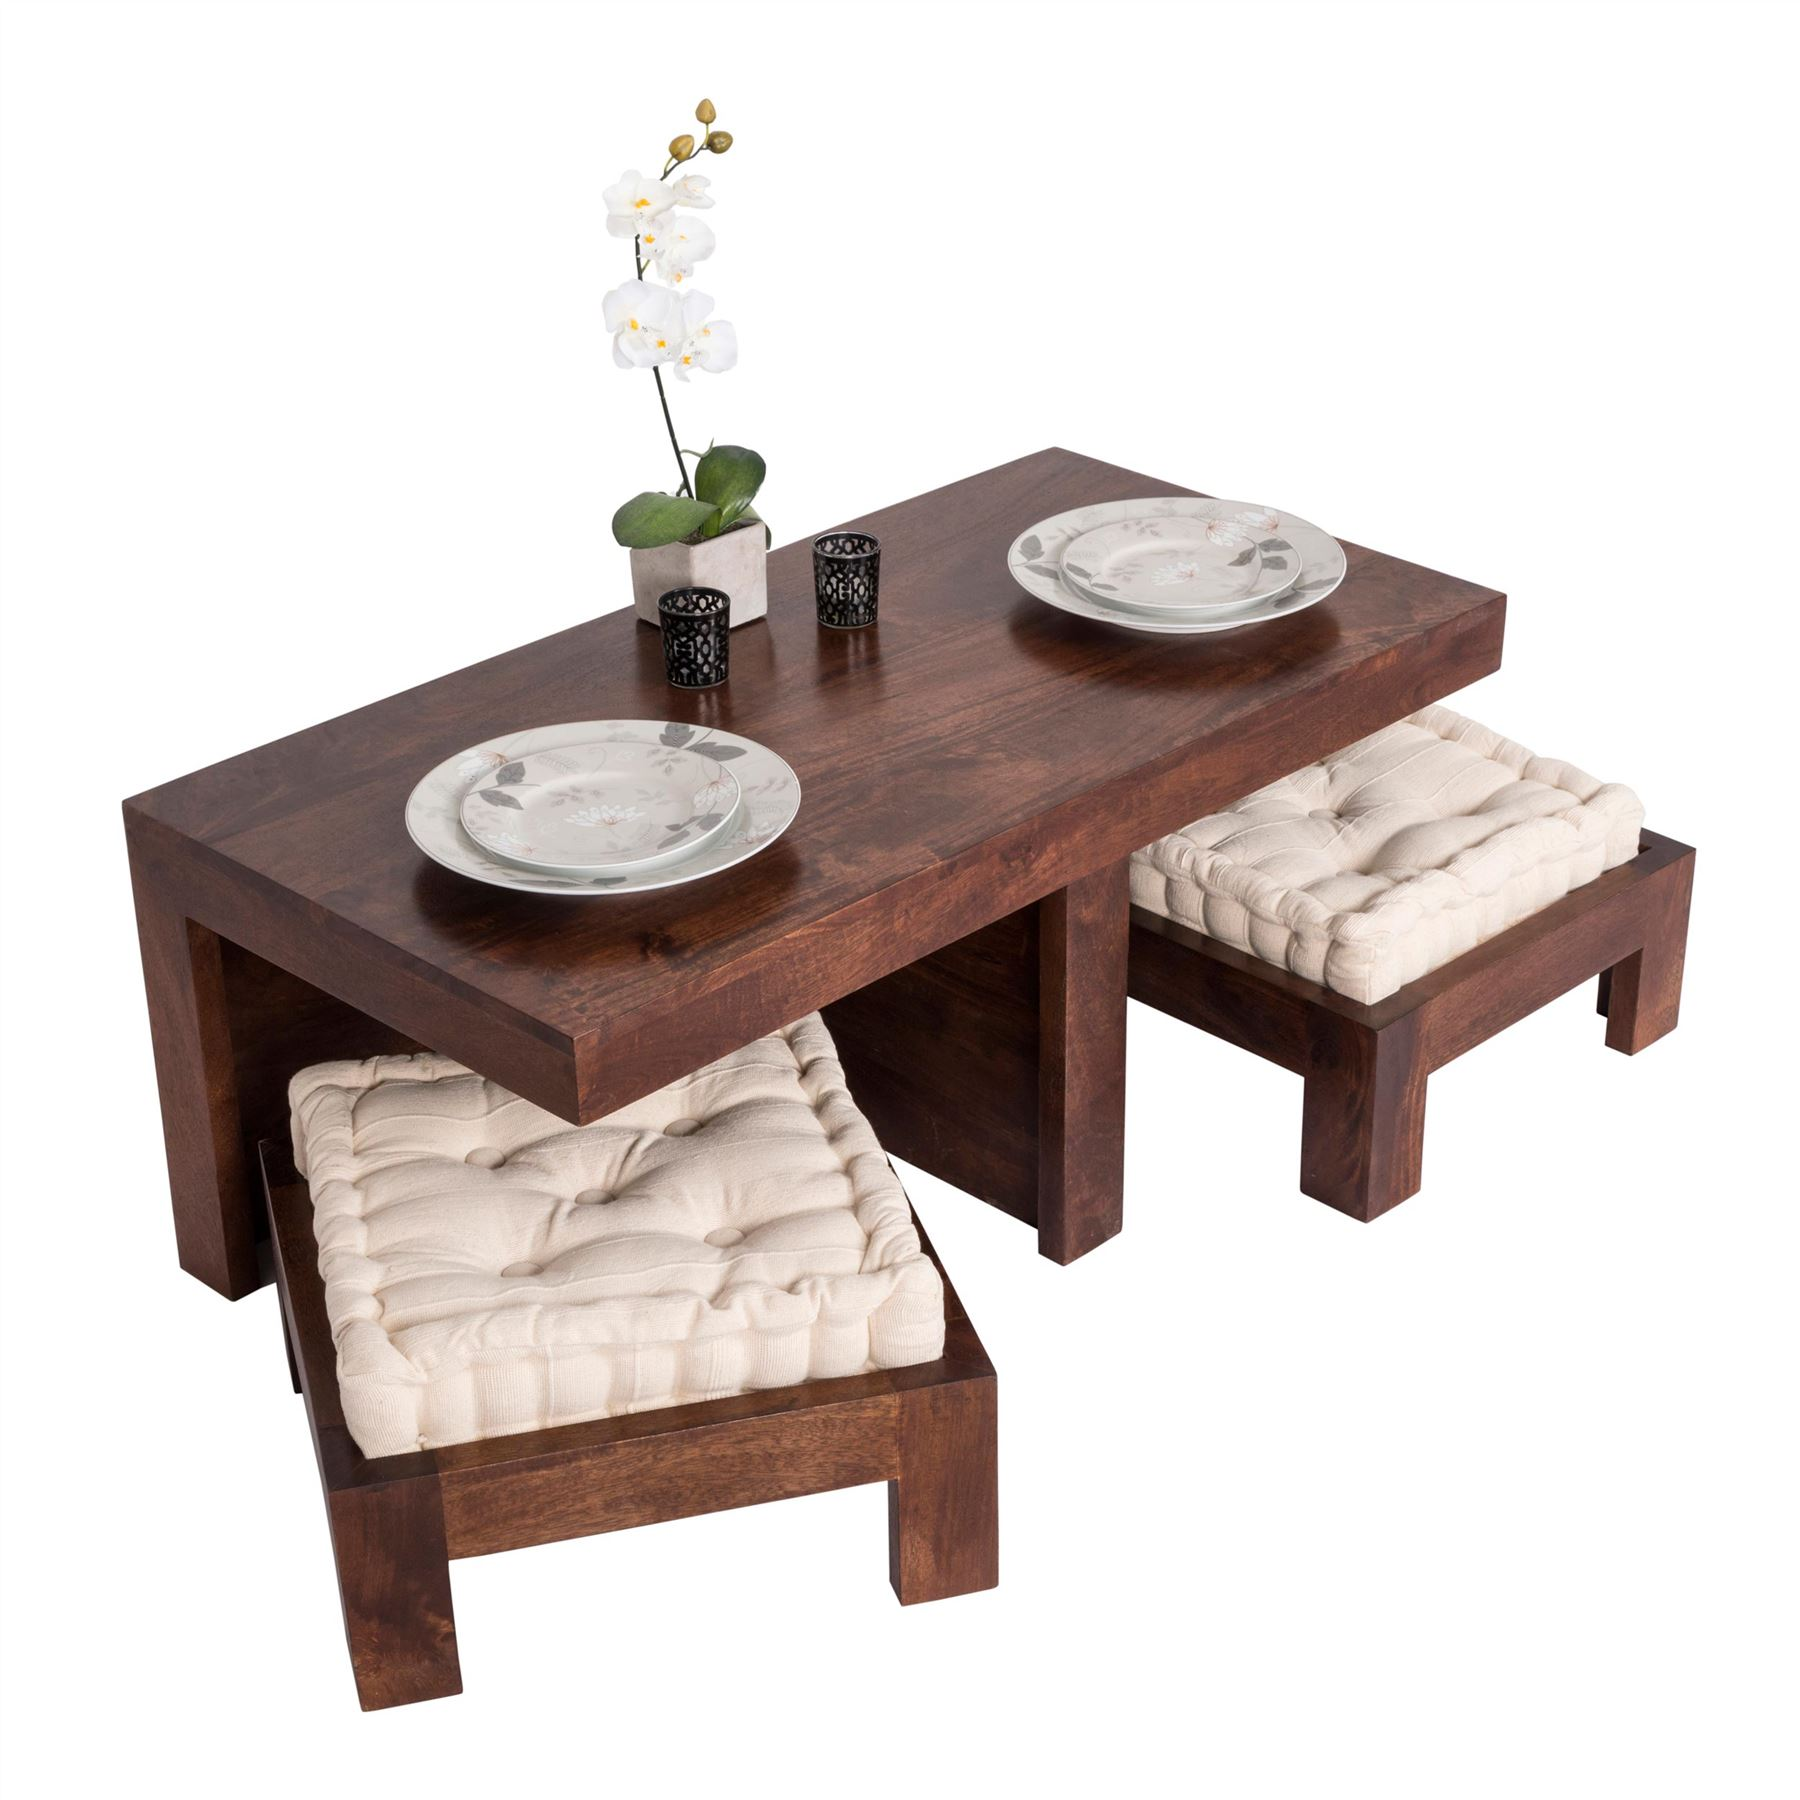 Living Room Table With Stools: Dark Shade Dakota Compact Coffee Table Set With Two Stools